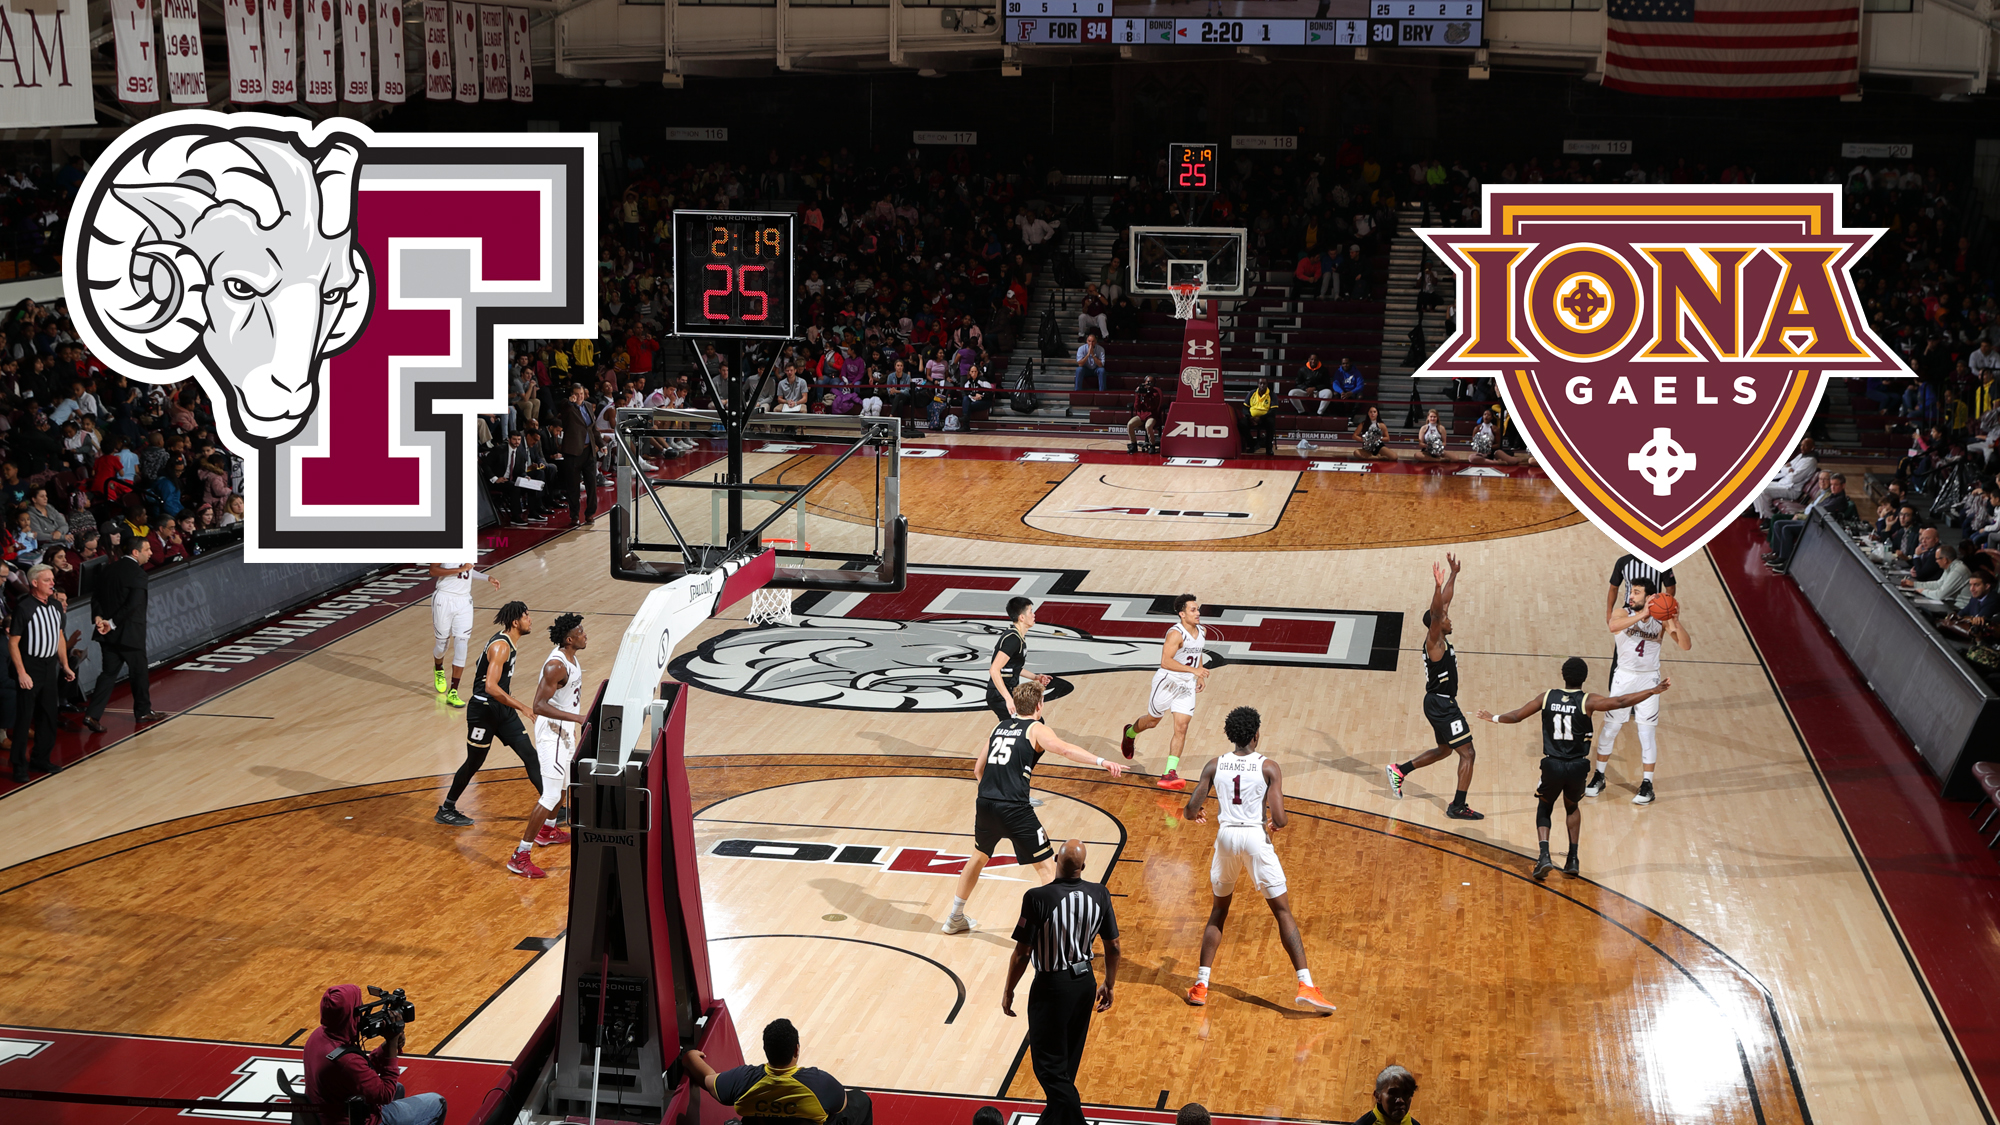 Rose Hill Gym with Fordham and Iona logos